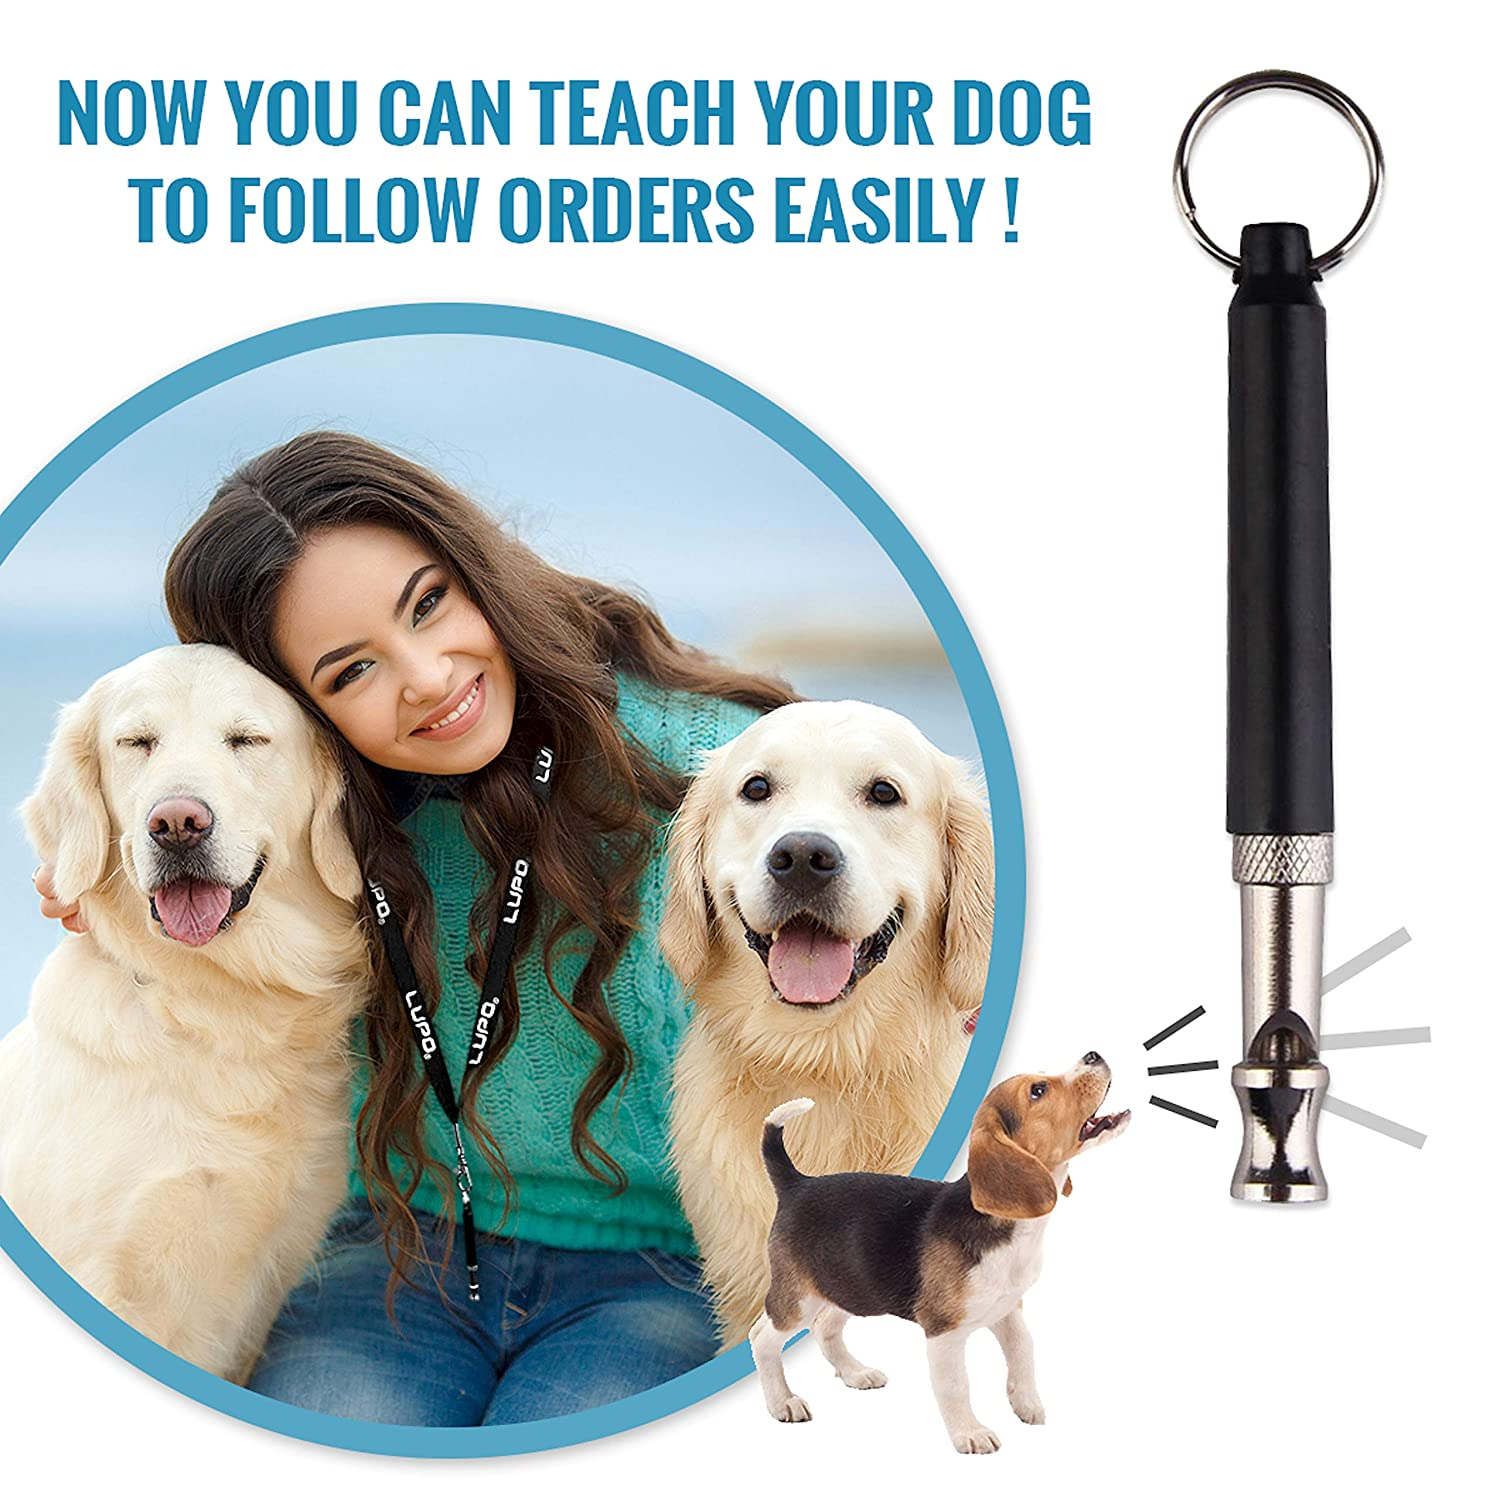 Amazon.com : Lupo Professional Ultrasonic Dog Training Whistle with Lanyard, Adjustable Frequencies & Free Training Ebook Guide : Lupo : Pet Supplies